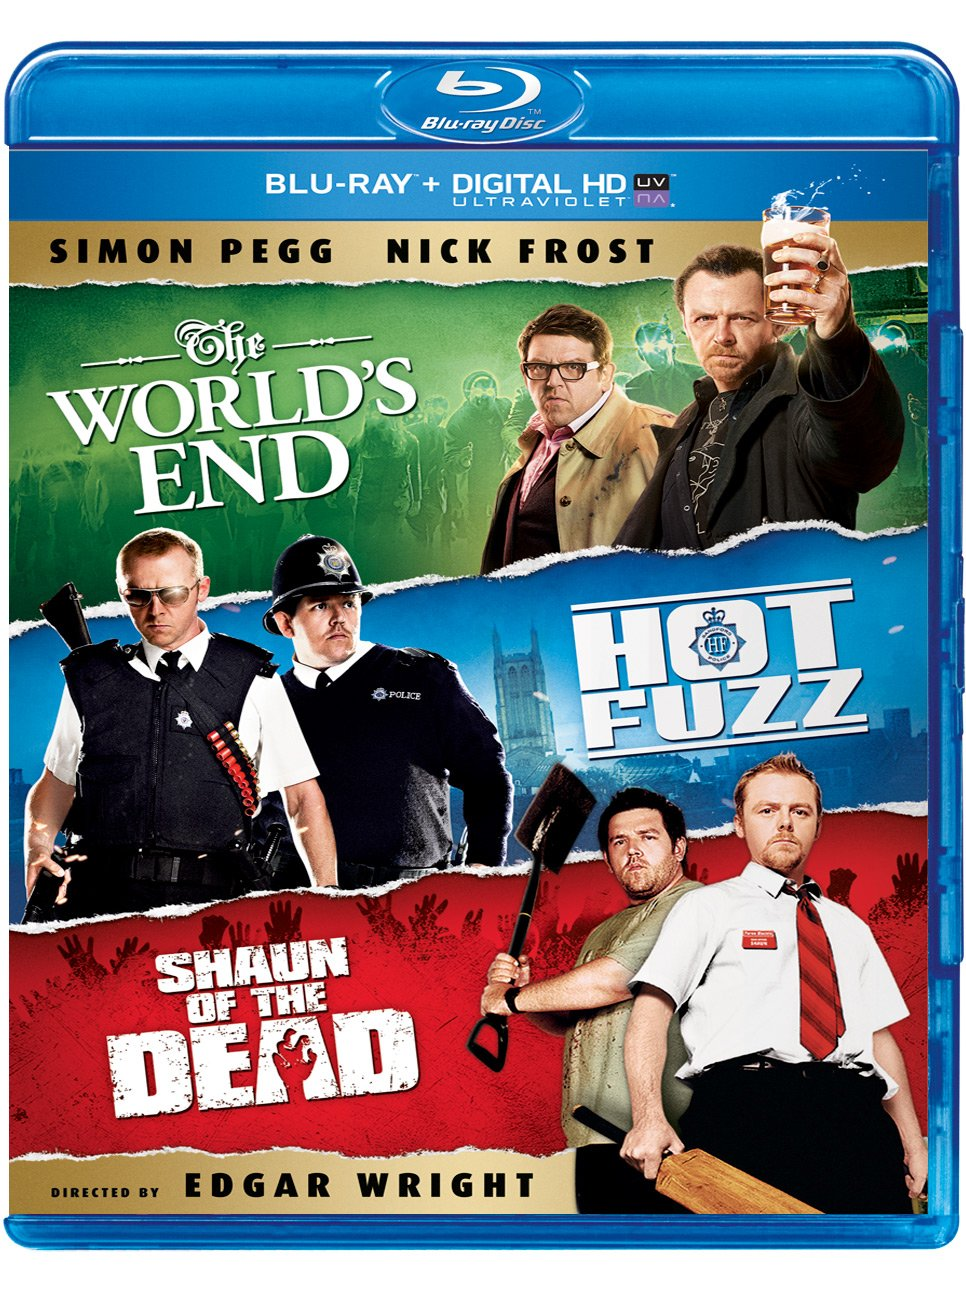 Blu-ray : The World's End / Hot Fuzz / Shaun of the Dead (Ultraviolet Digital Copy, 3 Pack, Snap Case, Slipsleeve Packaging, 3 Disc)